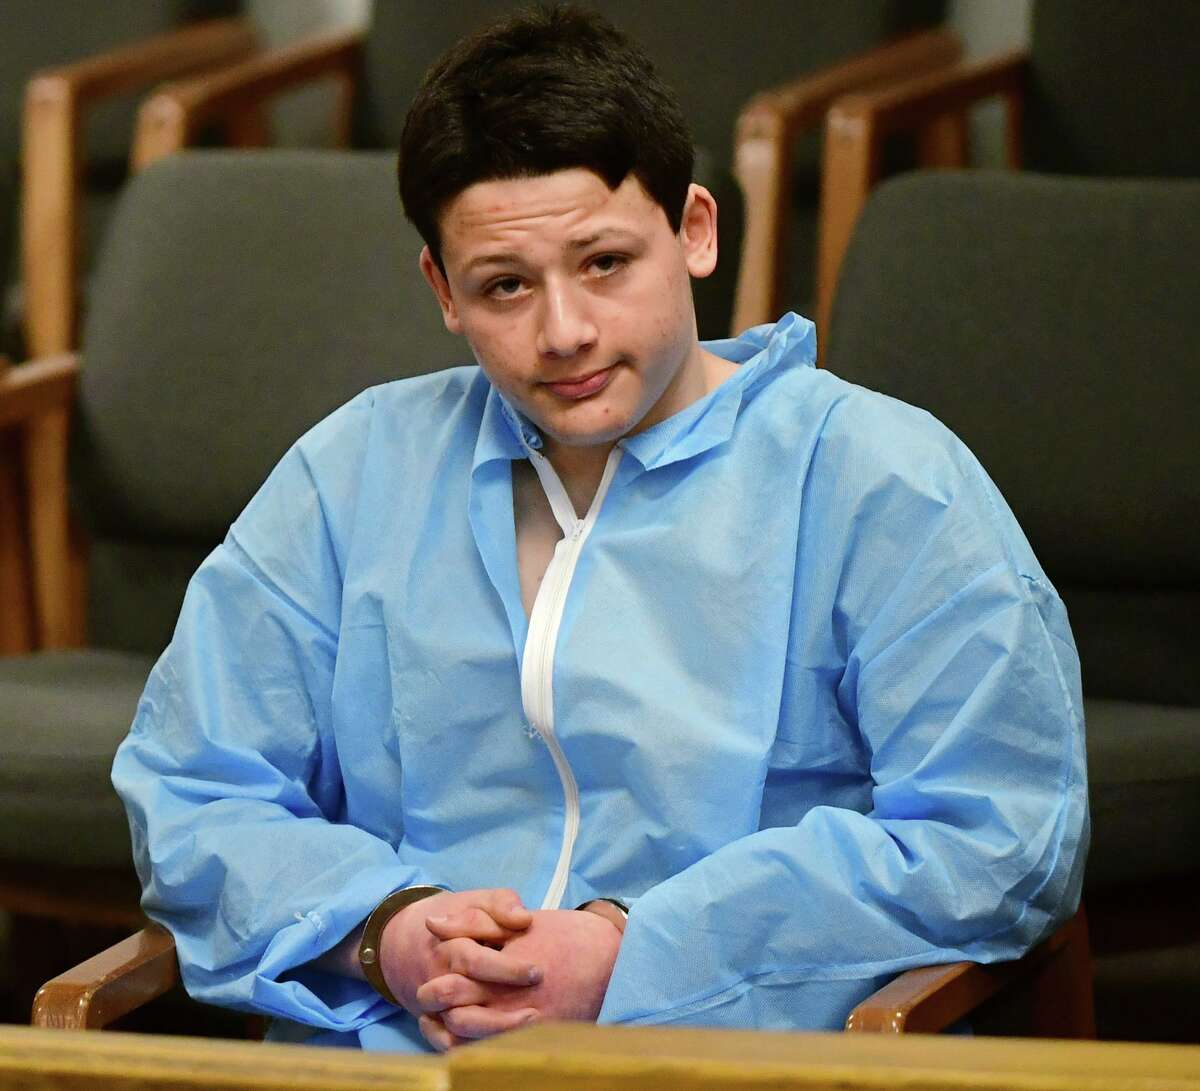 Ellis Tibere, 18, of Guilford, appears on Jan. 7 for an arraignment in state Superior Court in Norwalk to answer charges of criminal attempt at murder, first-degree assault and possession of a deadly weapon in Norwalk. The charges stem from for an incident that occurred in Westport on Monday.